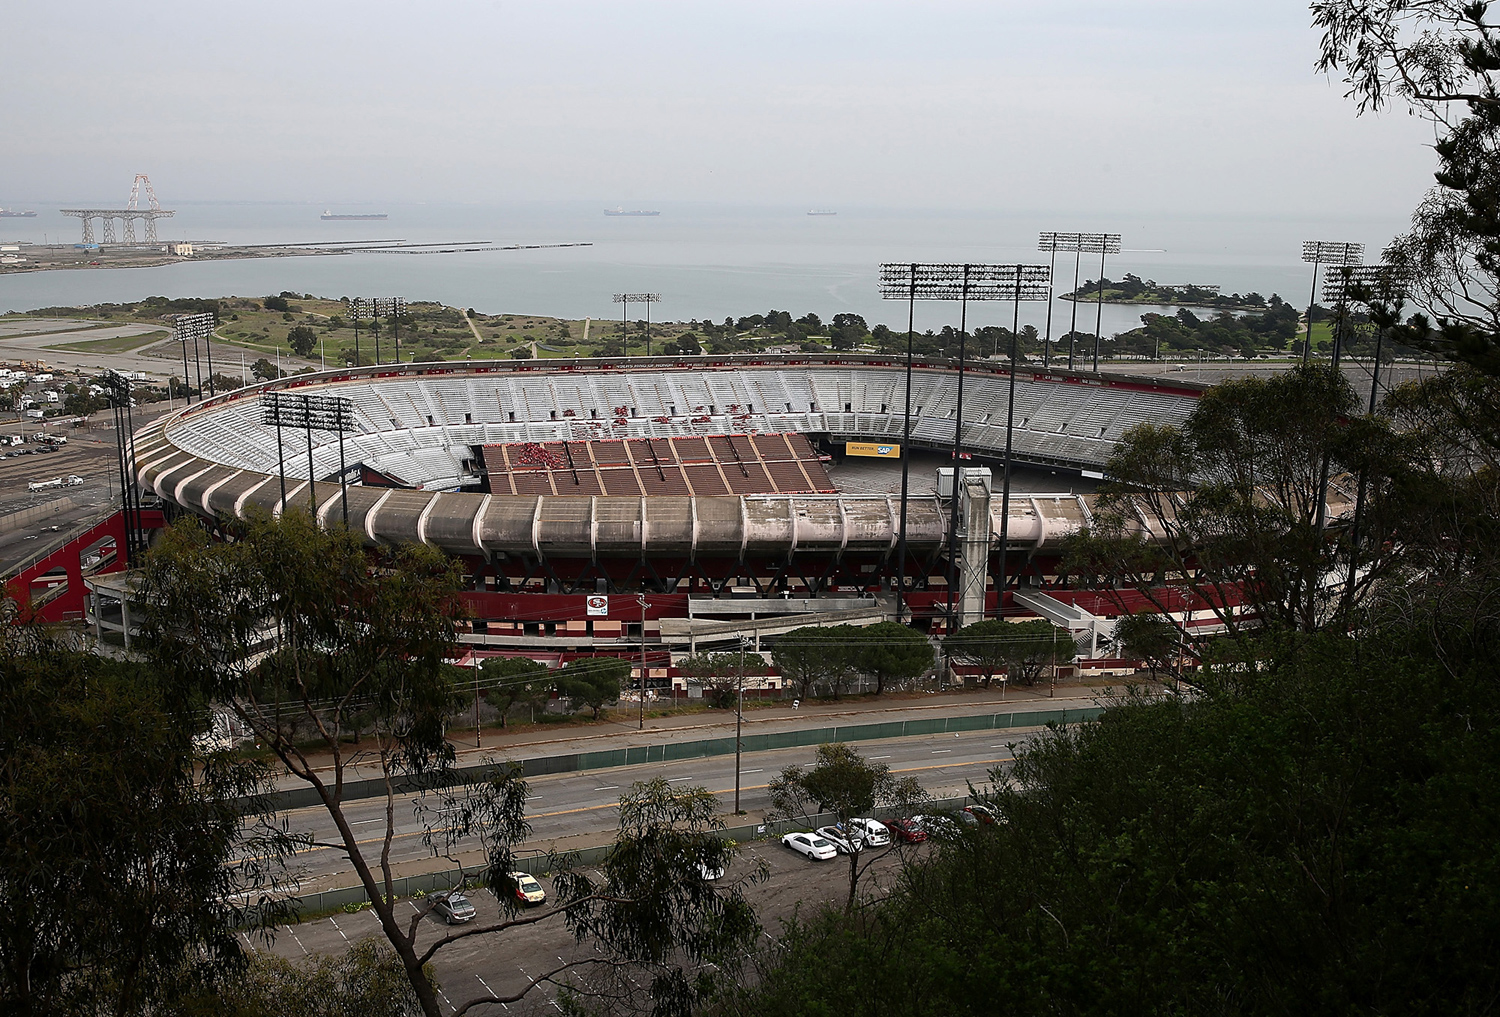 A general view of Candlestick Park on February 4, 2015, as a months-long demolition project began.